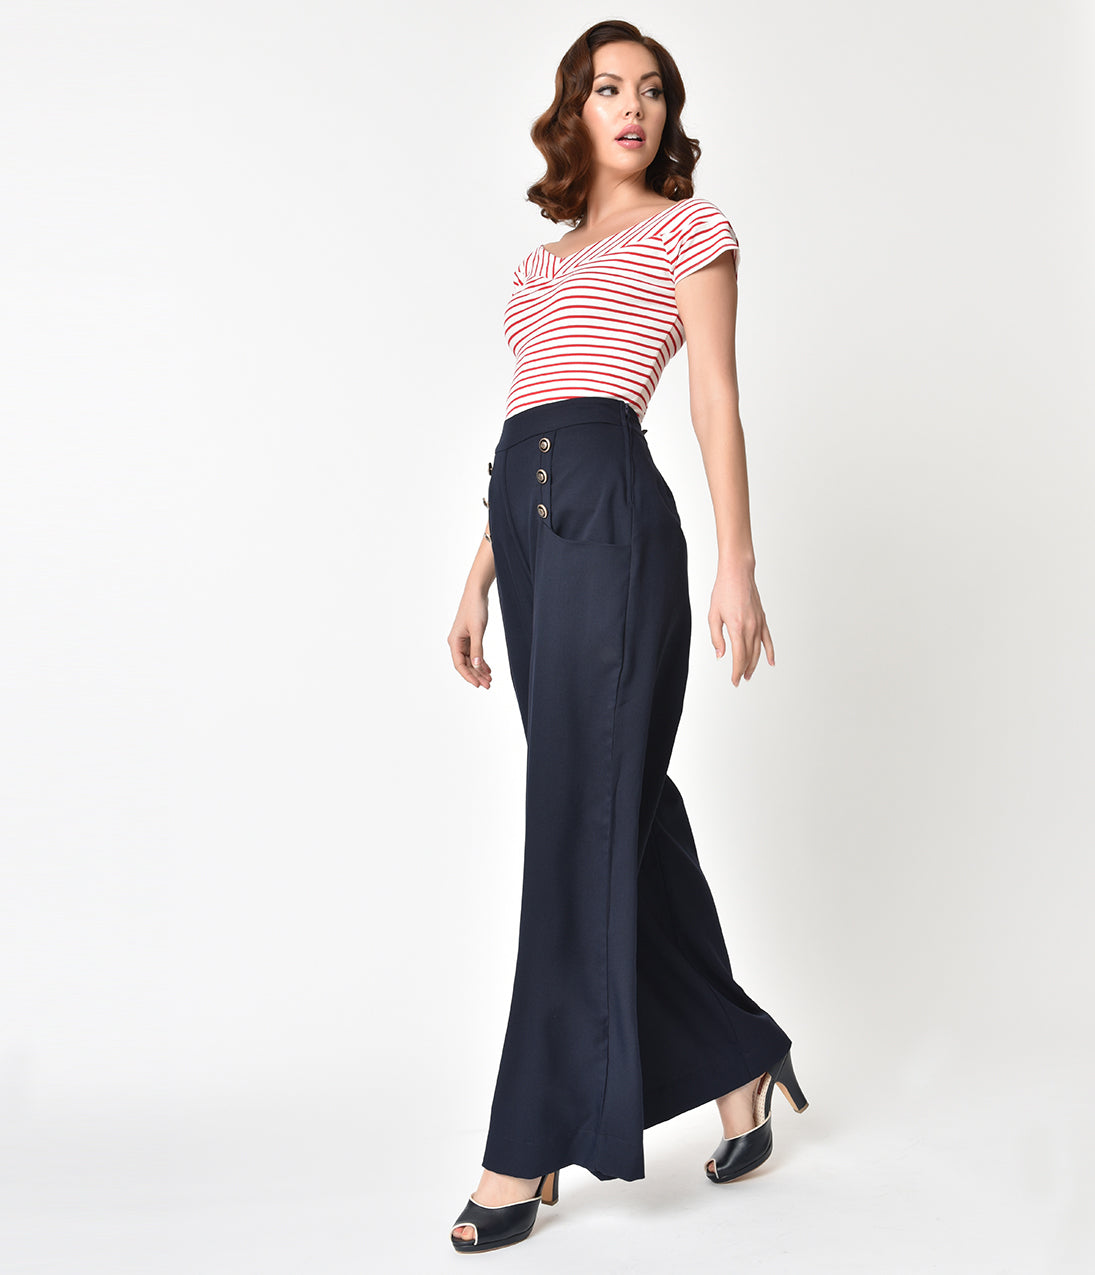 1940s Costume & Outfit Ideas – 16 Women's Looks Unique Vintage 1940S Style Midnight Blue High Waist Sailor Ginger Pants $68.00 AT vintagedancer.com